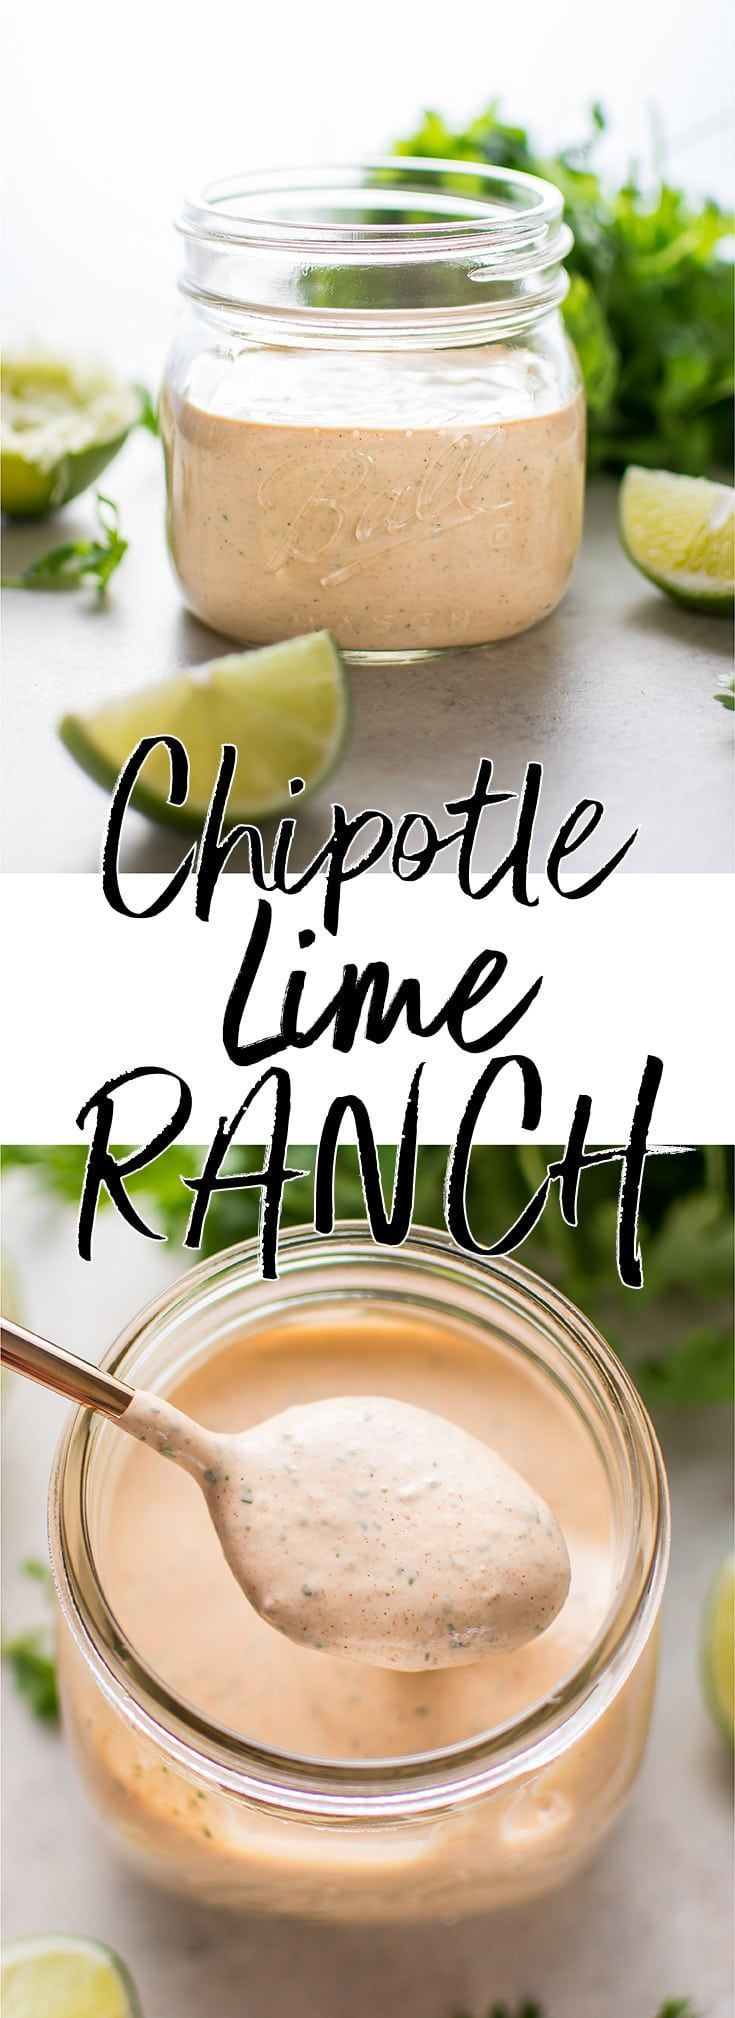 Chipotle cilantro lime ranch dressing is smoky, tangy, and as spicy as you want it to be! This dressing is the ultimate topping for salads, tacos, wraps, or even for dipping chicken strips.